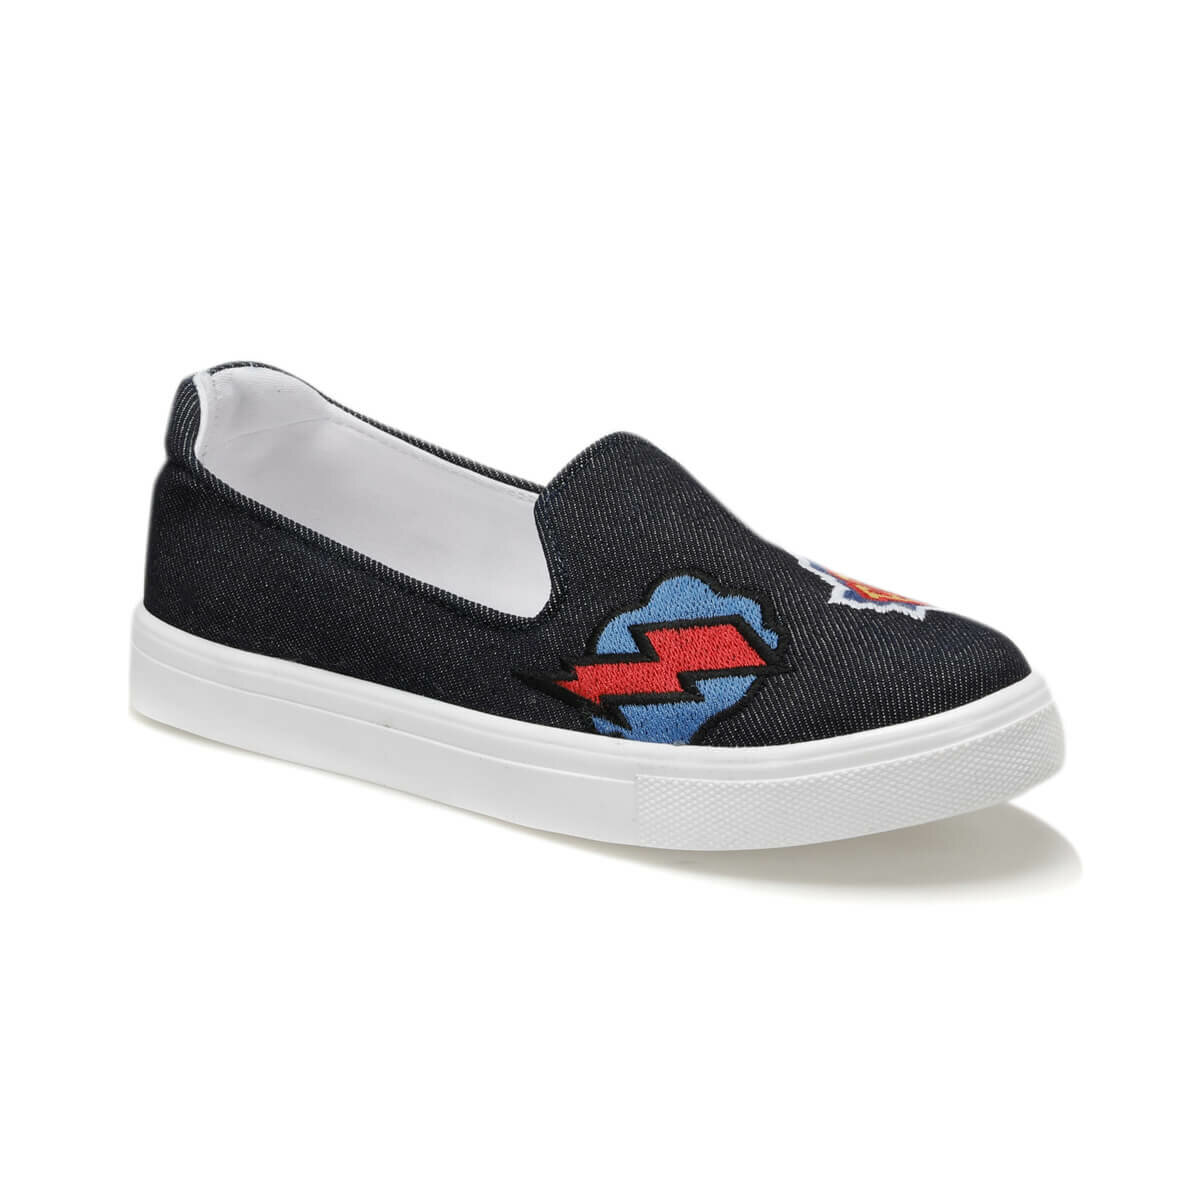 FLO U1304 Navy Blue Women 'S Slip On Shoes Art Bella